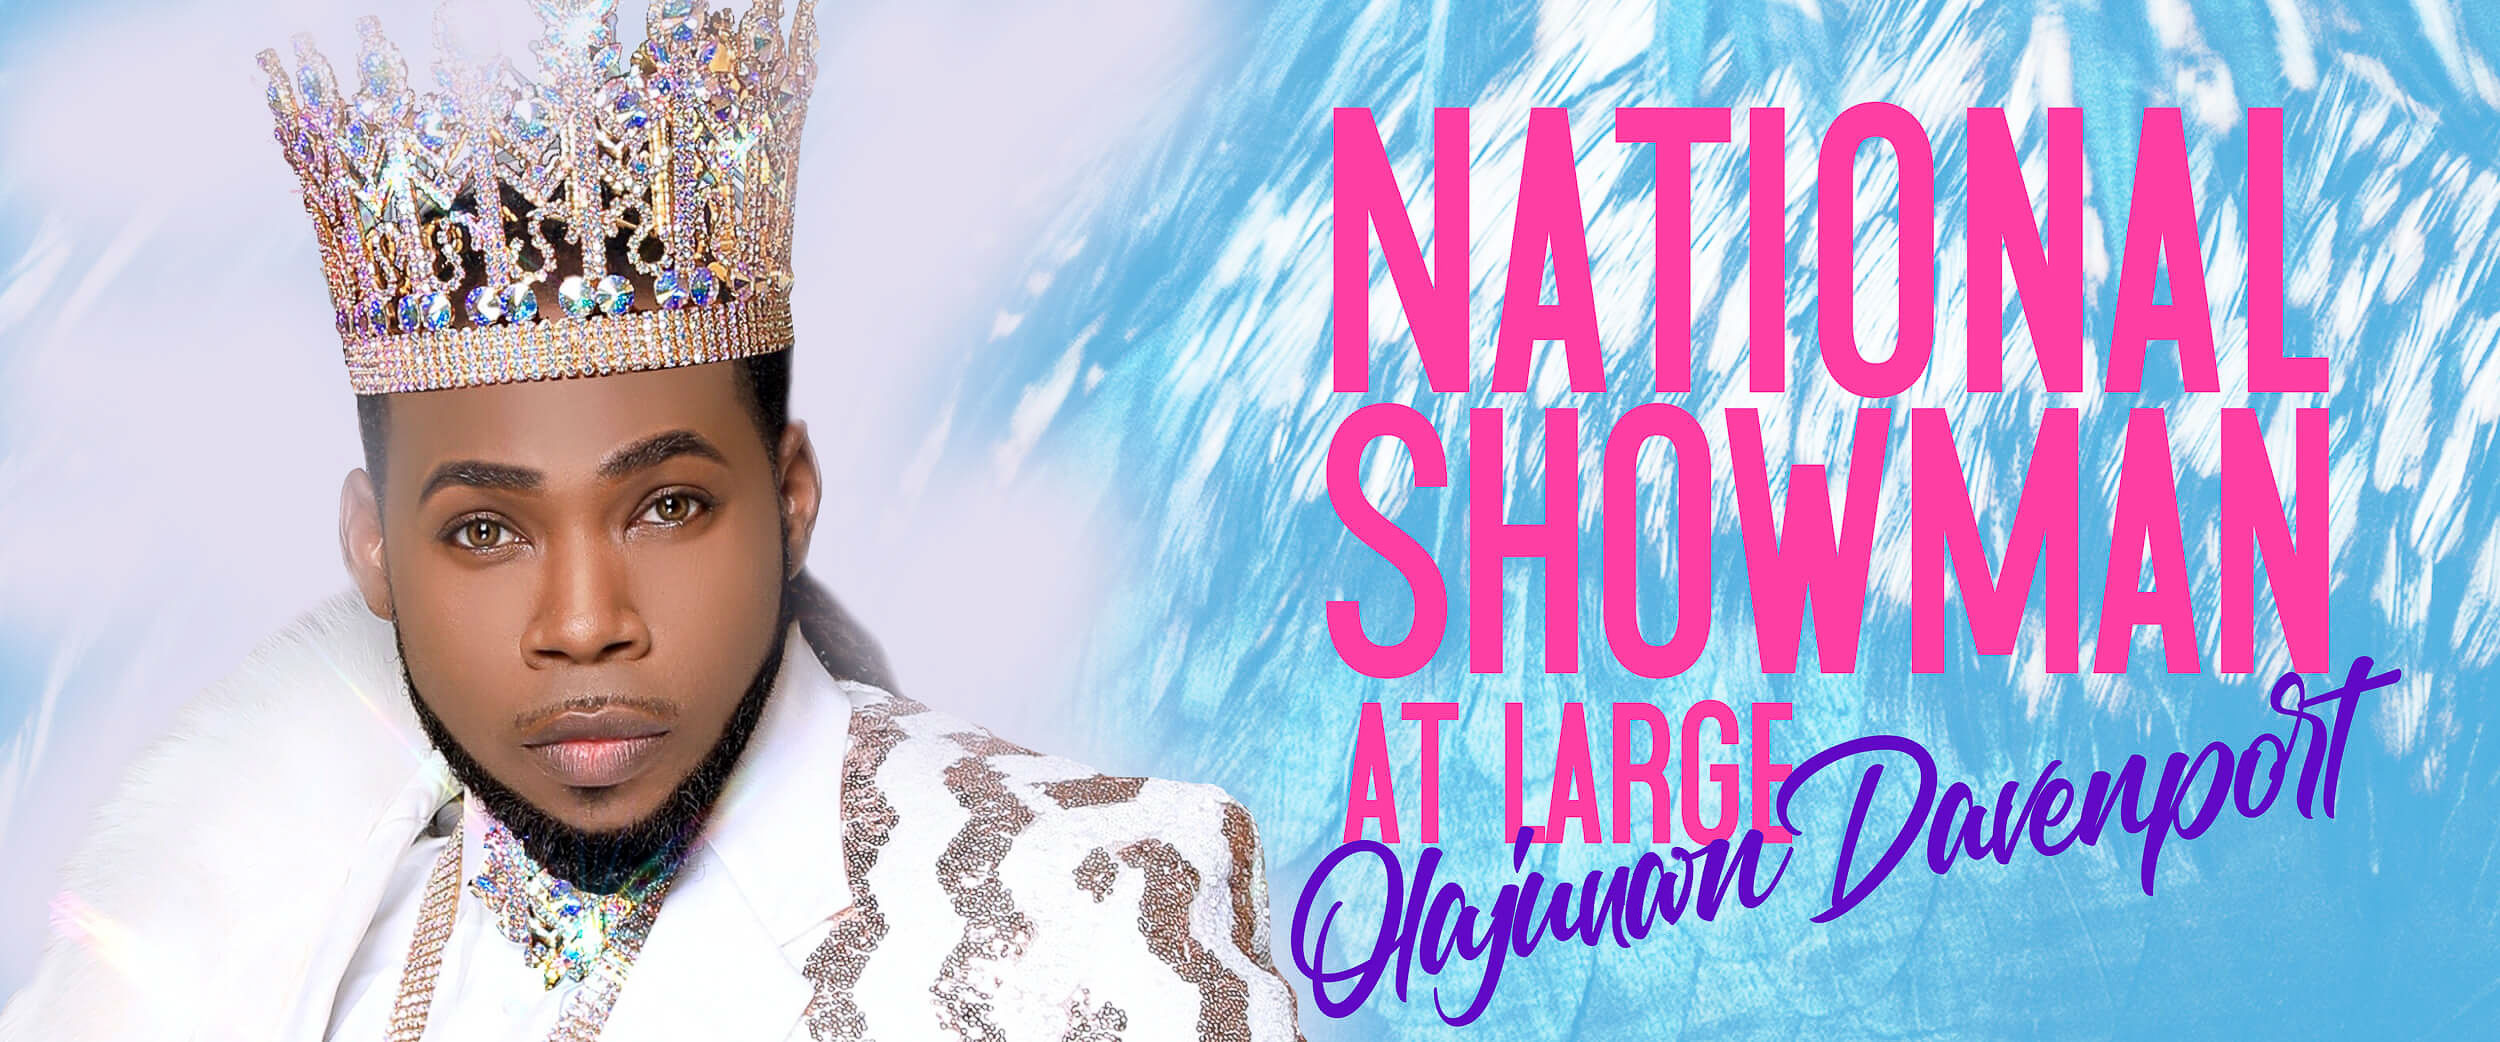 Olajuwon-Davenport---National-Showman-At-Large-banner-1